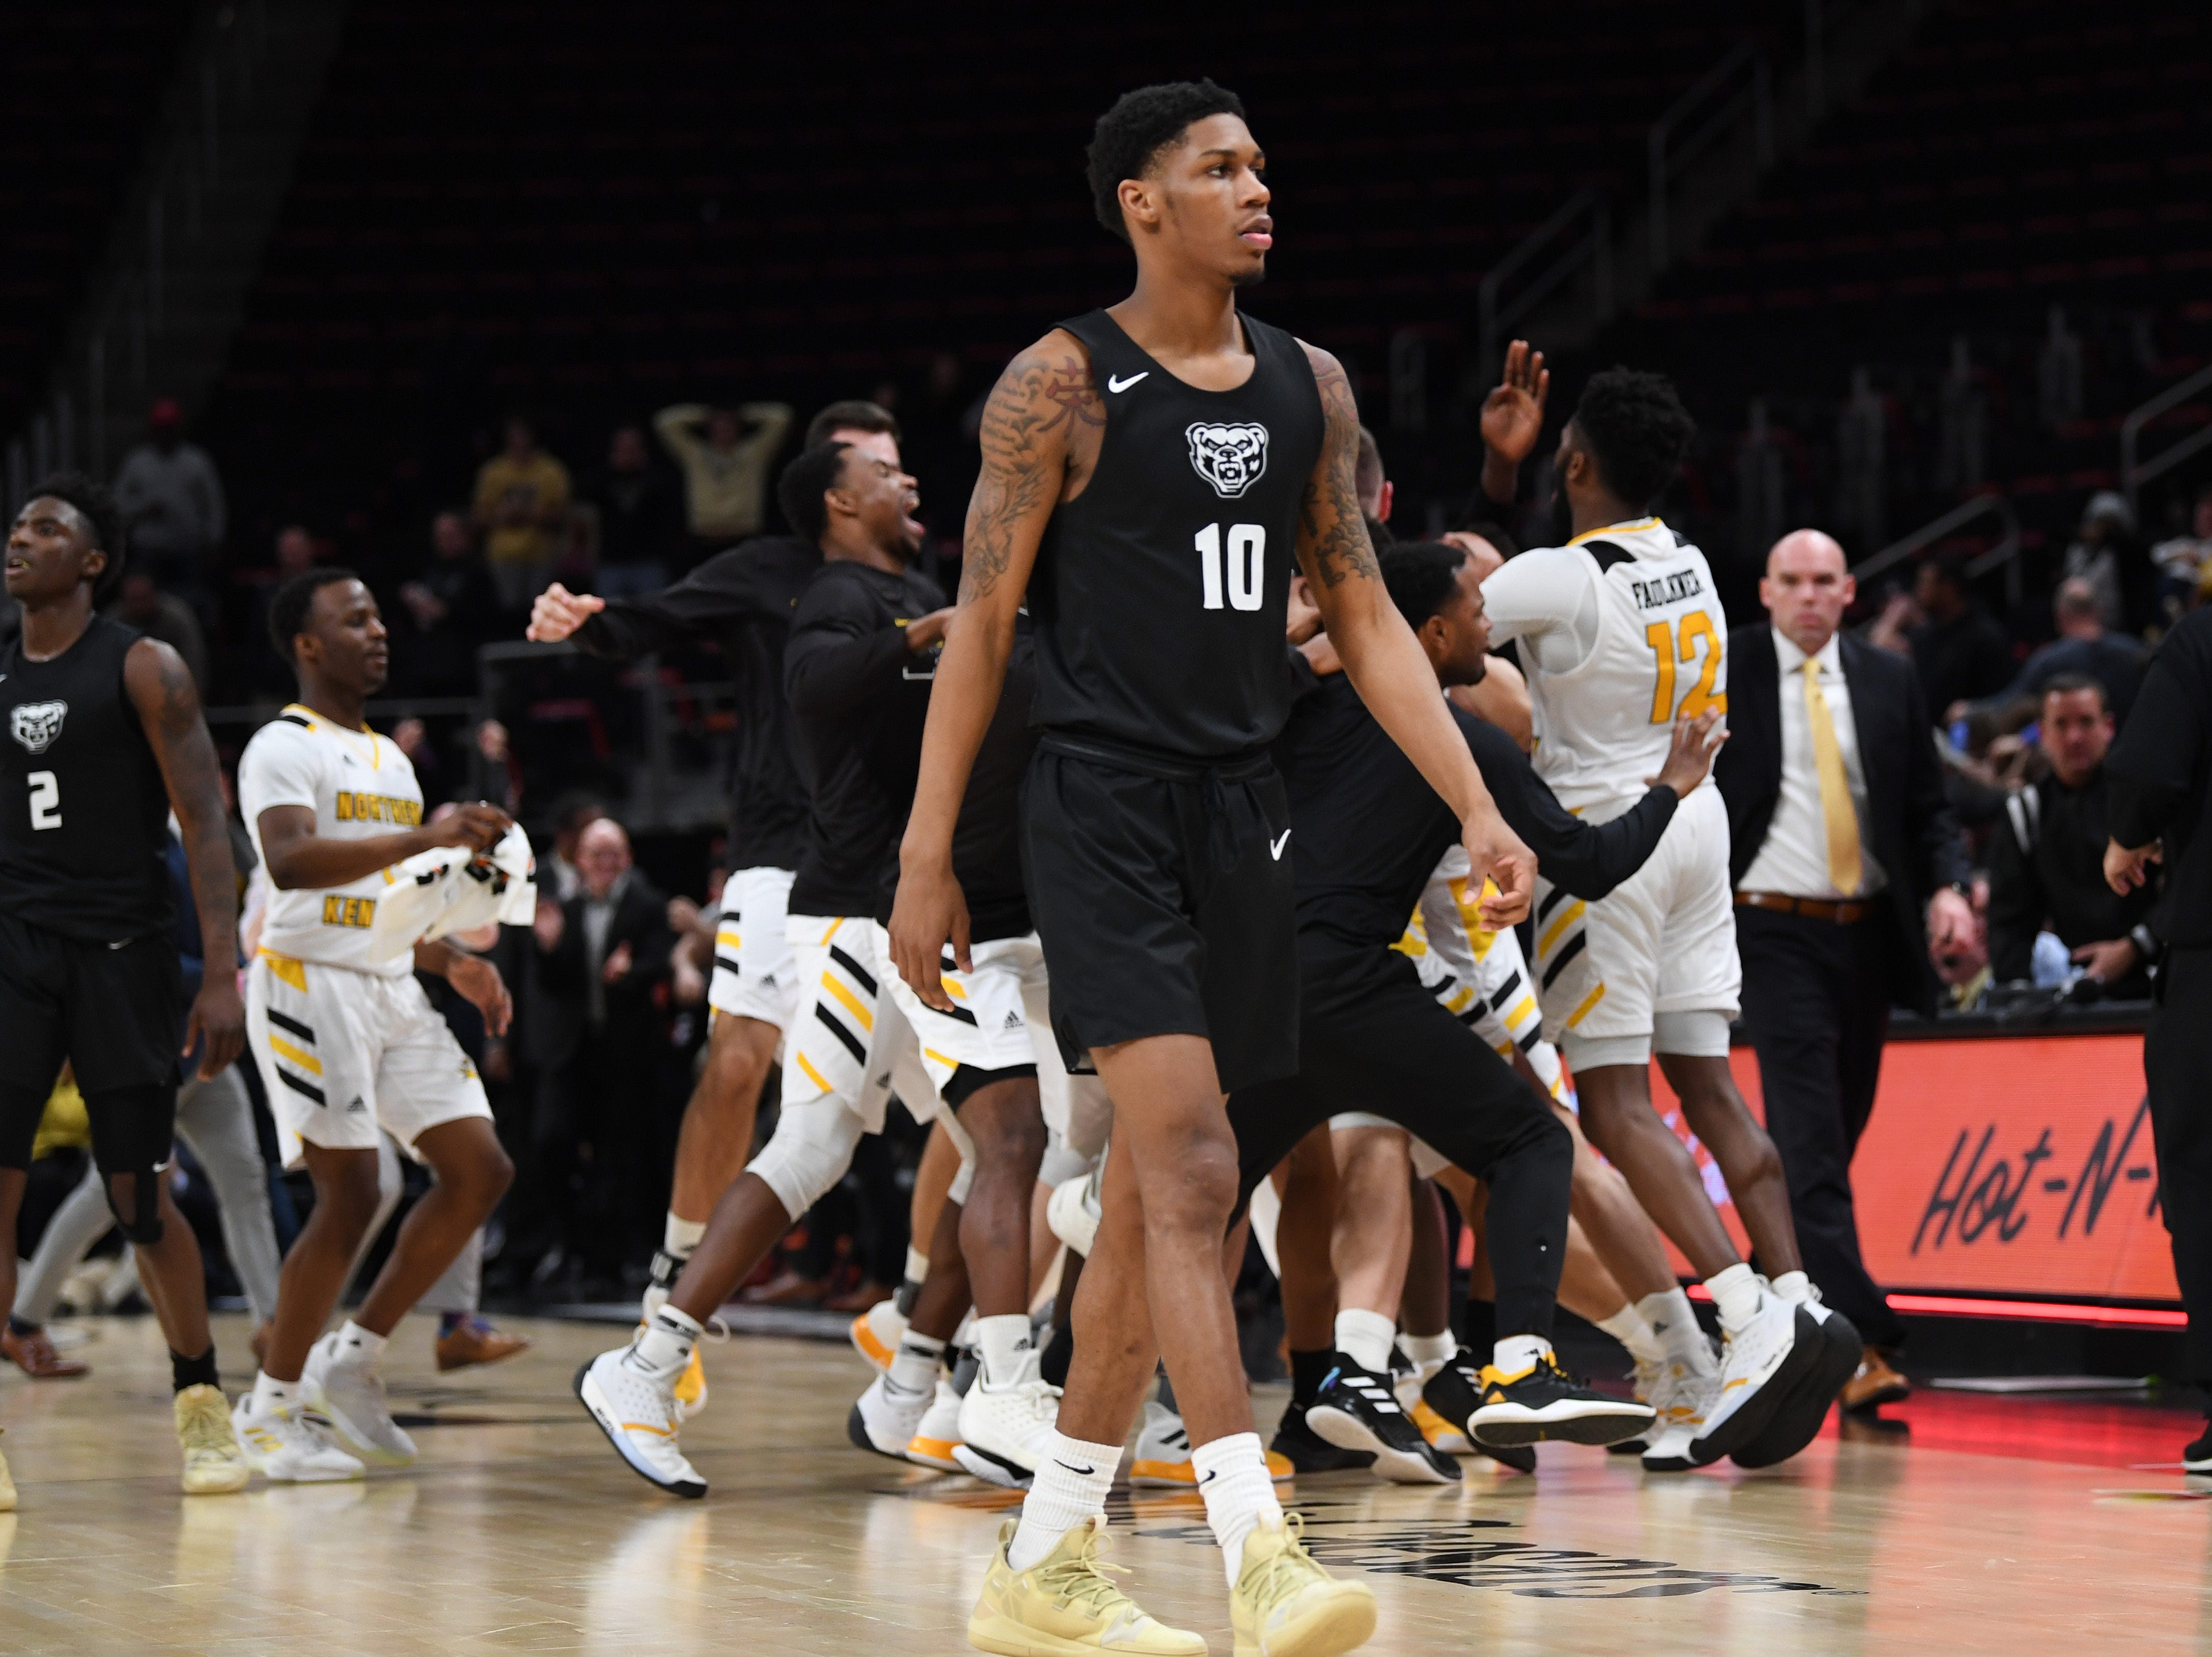 The Northern Kentucky Norse celebrate their victory as Oakland Golden Grizzlies guard Karmari Newman walks off the court at Little Caesars Arena in Detroit, Monday, Mar. 11, 2019.  Northern Kentucky defeated Oakland 64-63.